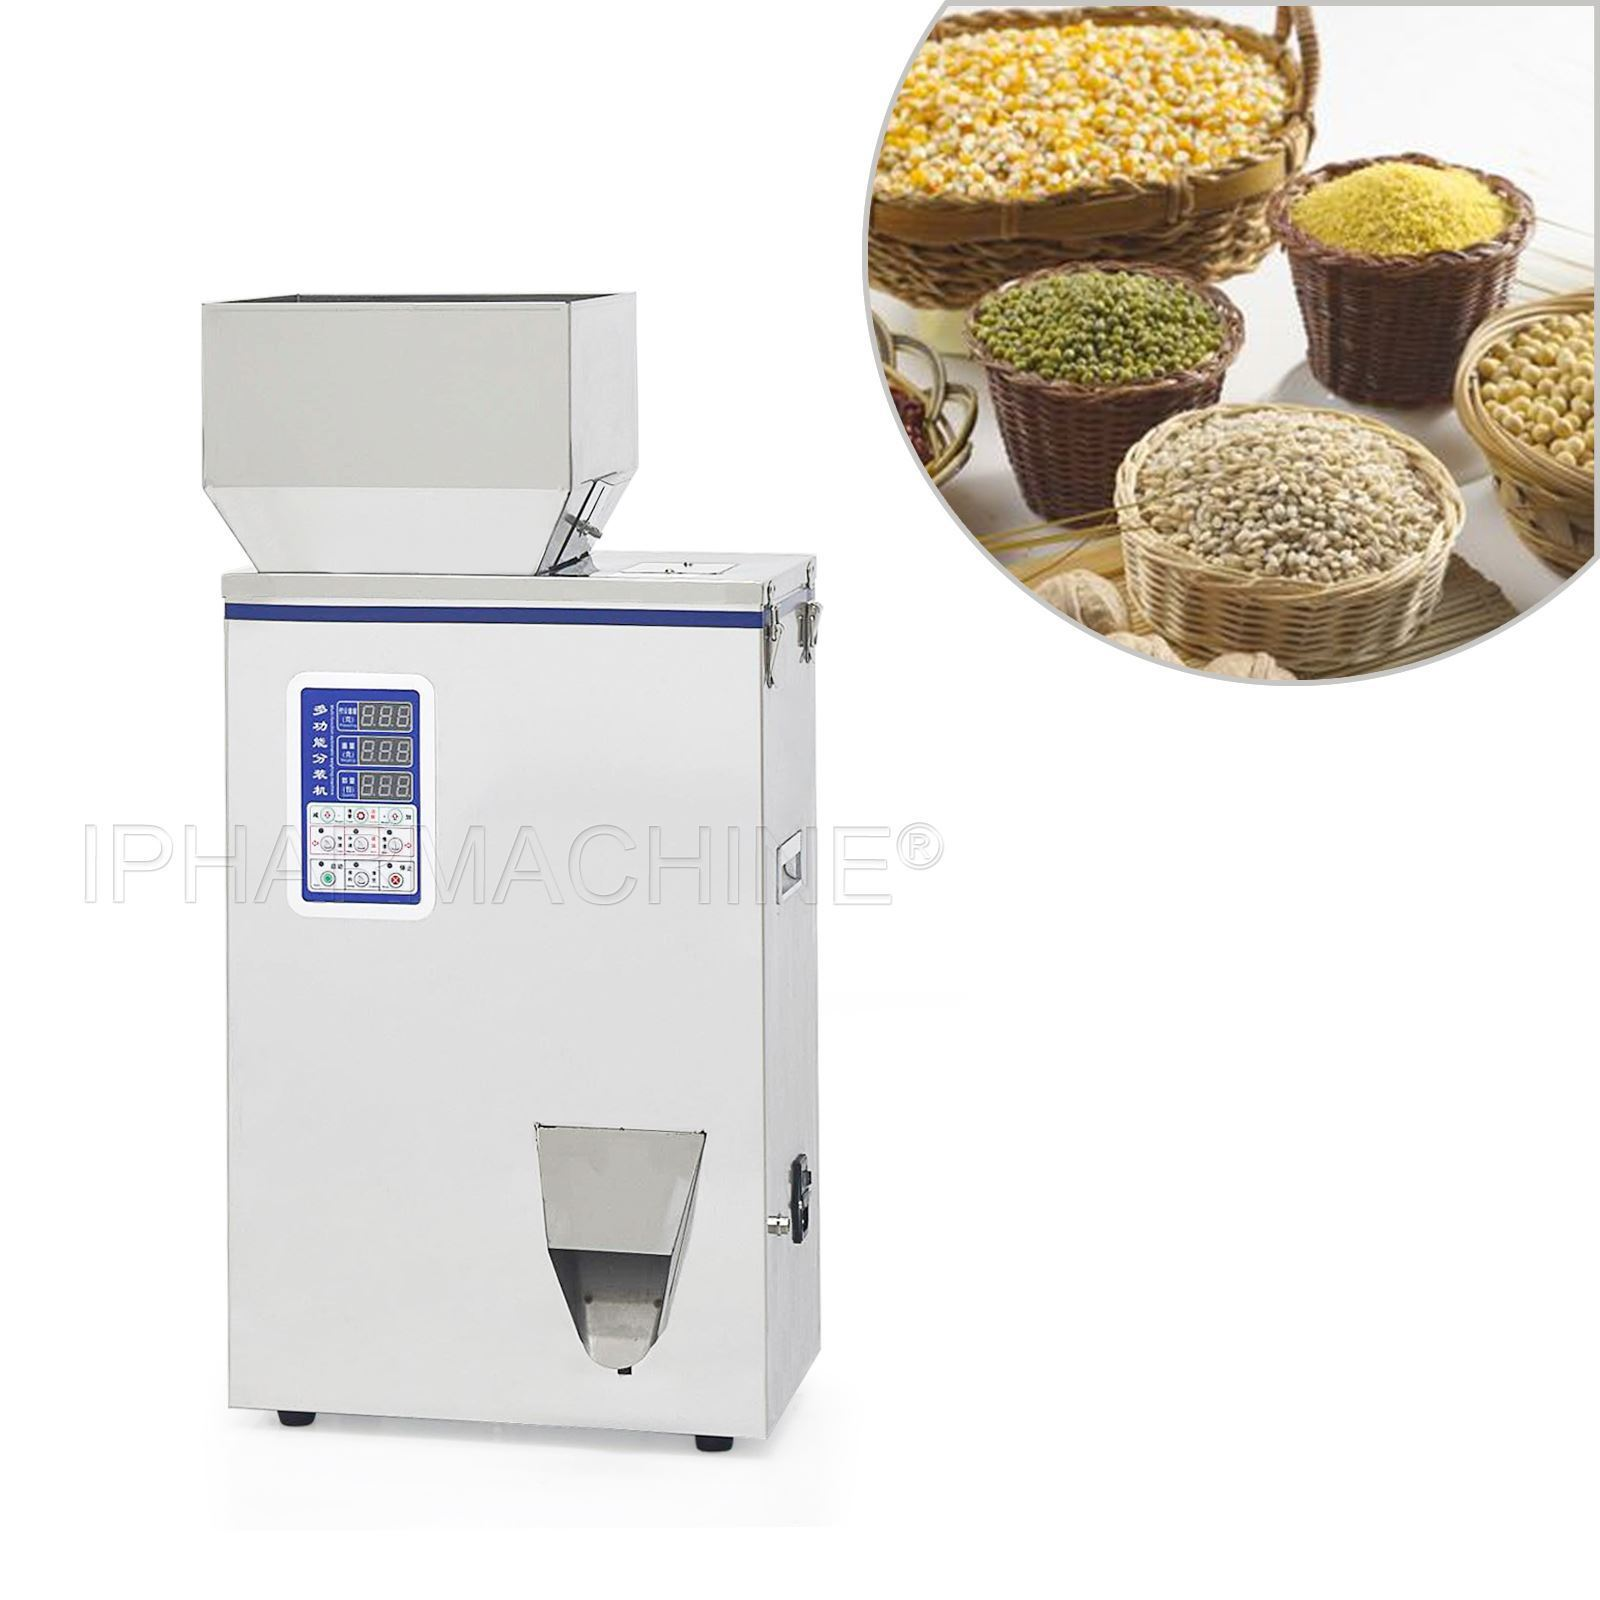 particle filling machine